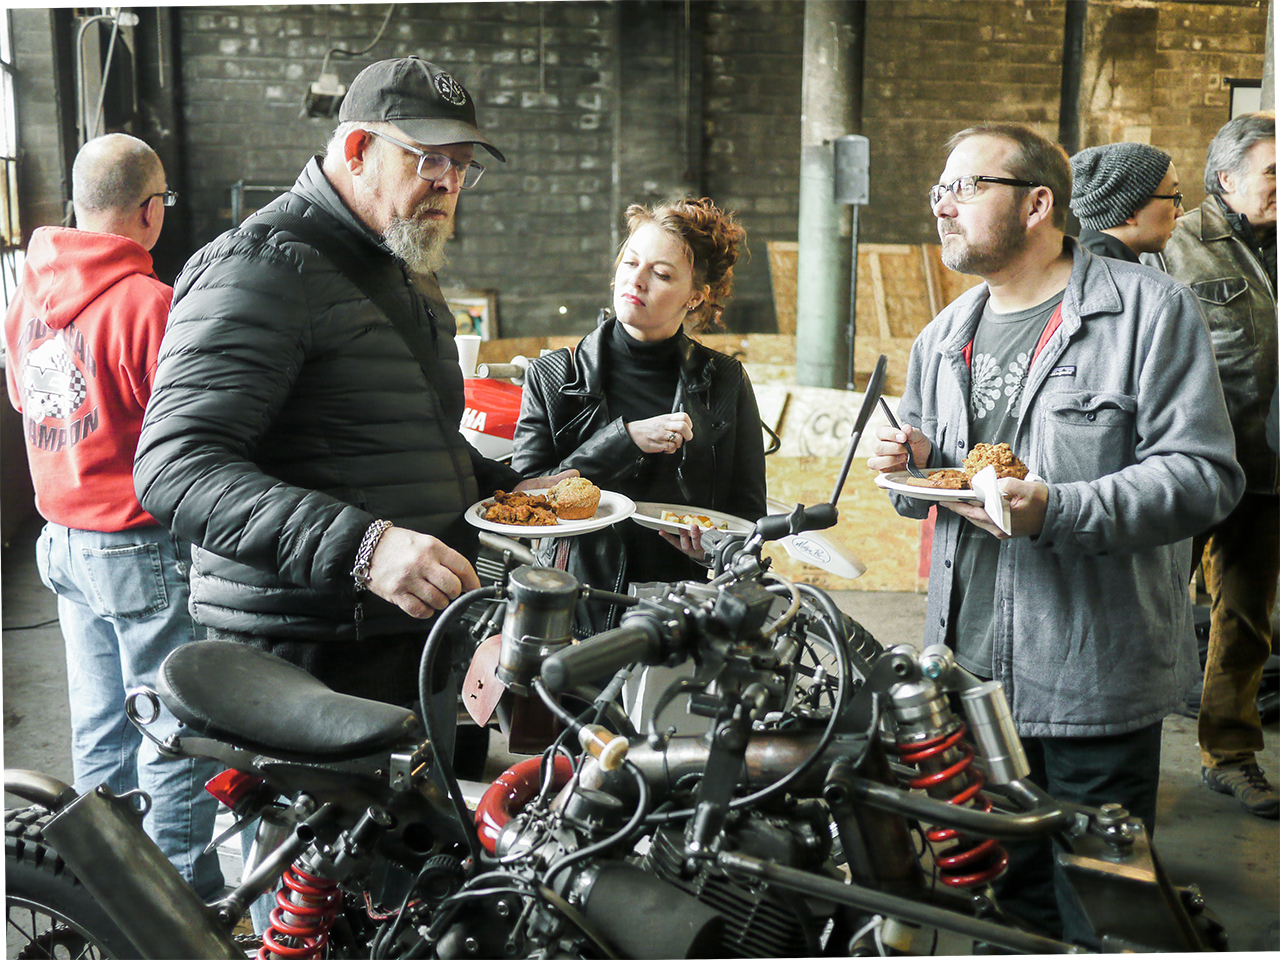 Food and talking about motorcycles go together well. Alan Lapp (left) explains the workings of his creation.